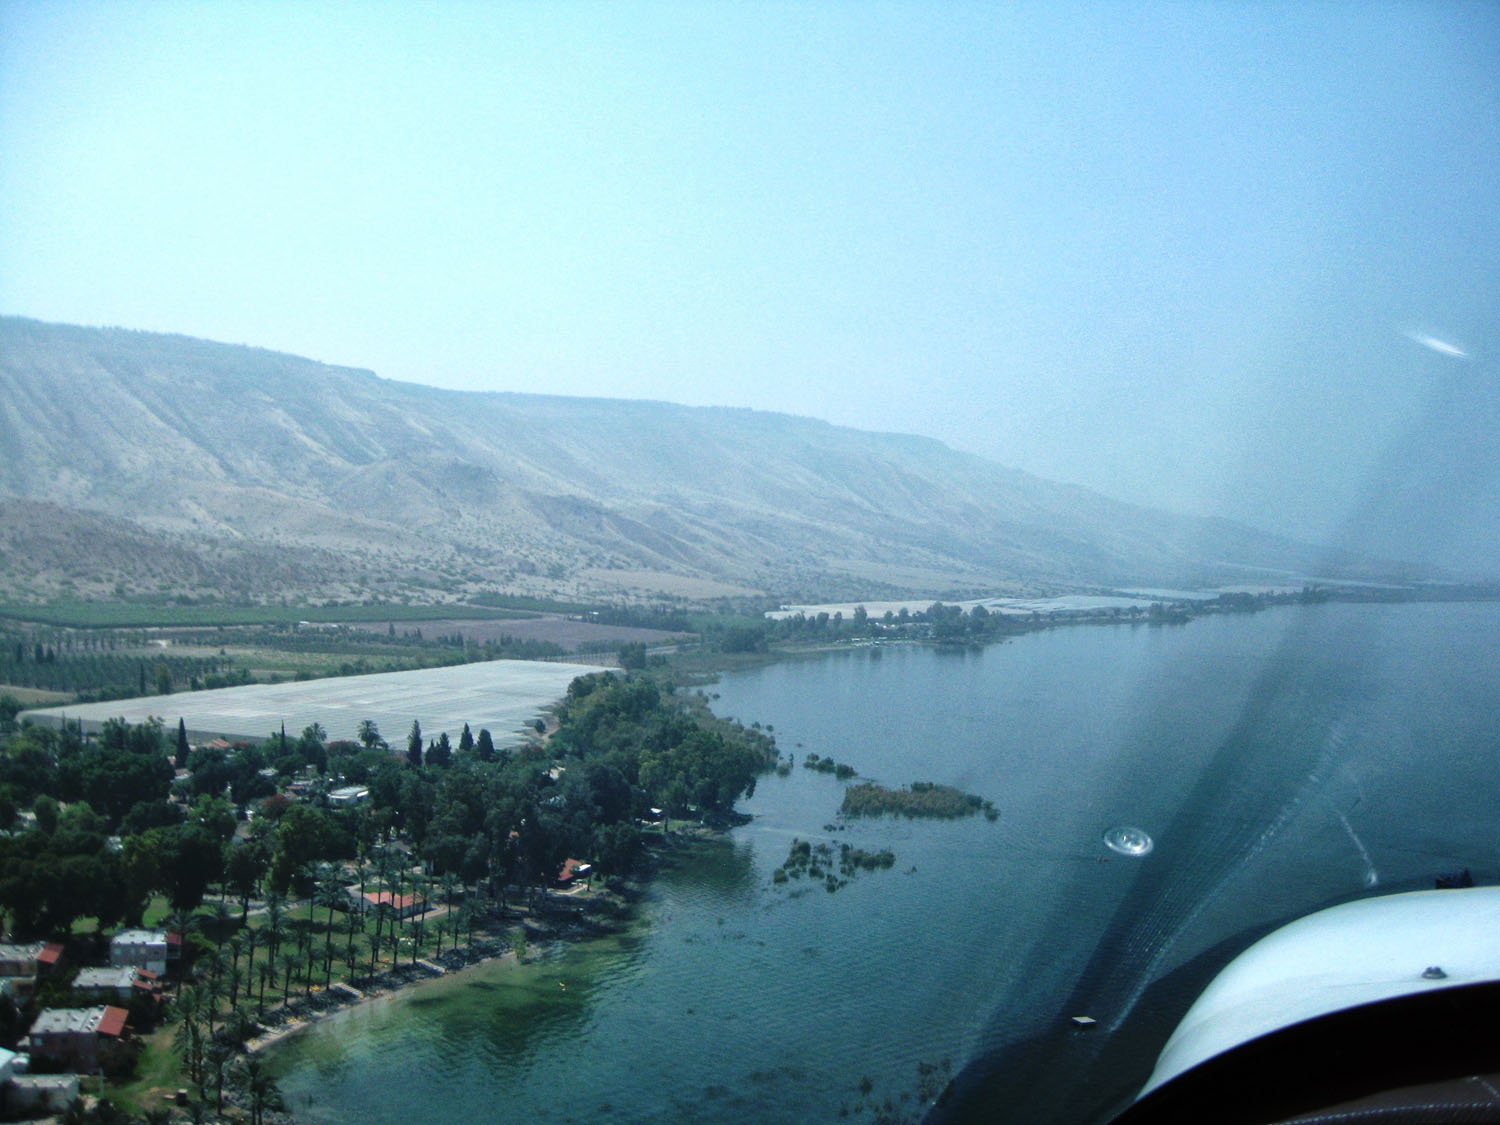 Flying along the east coast of the Sea of Galilee